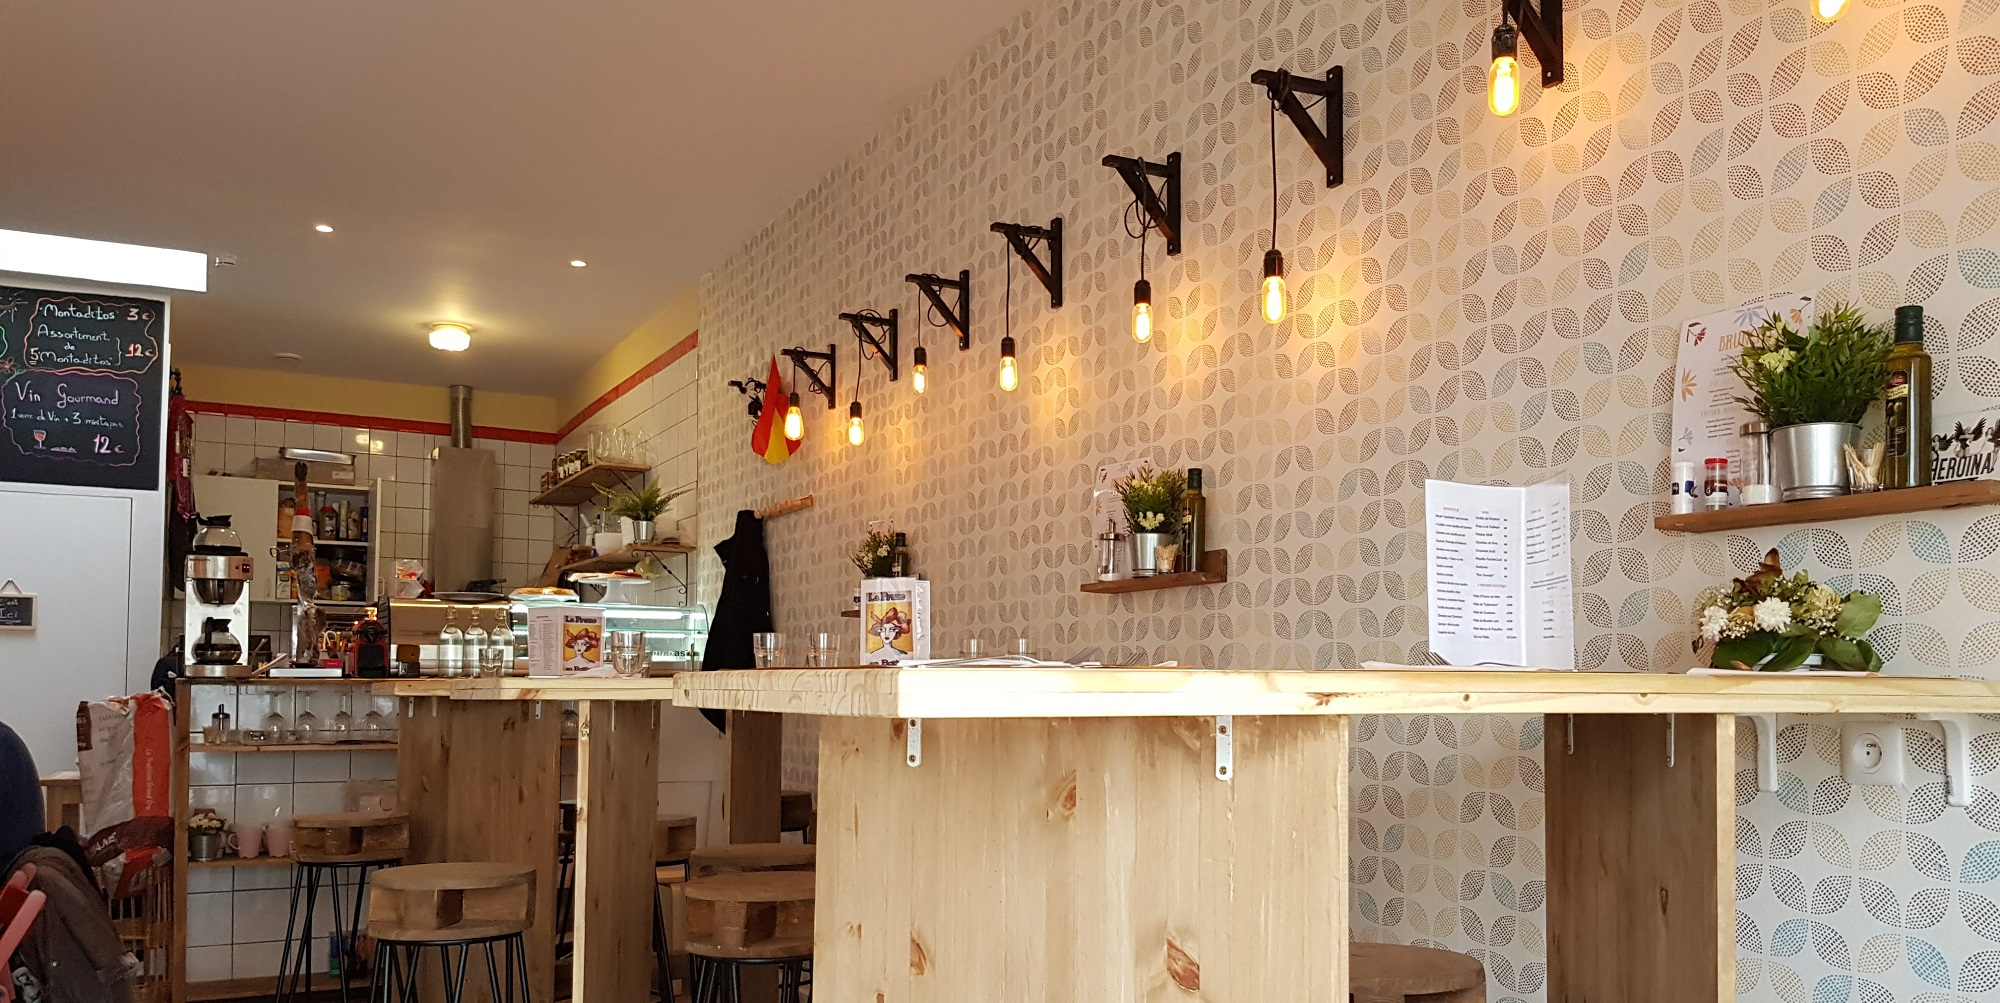 Brunch La Prune en Boite (94700 Maison Alfort)